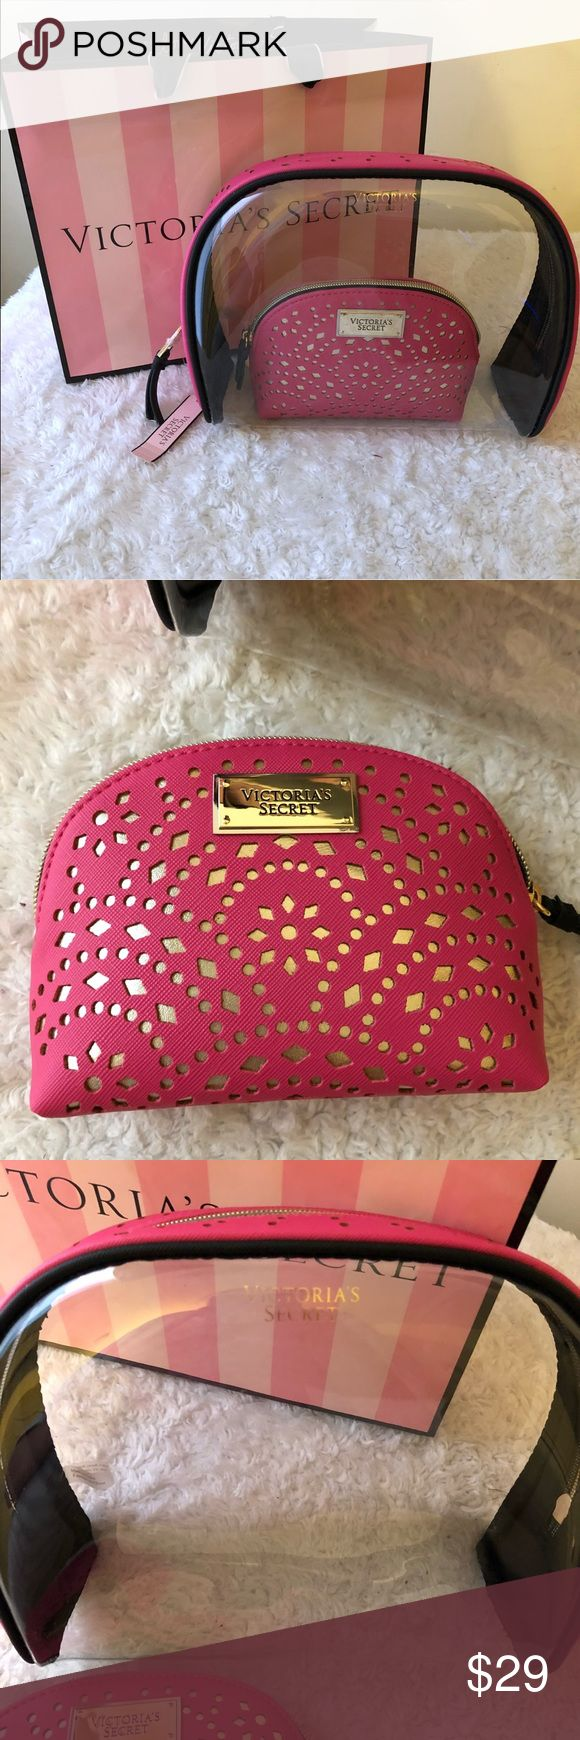 🎁 VS Cosmetic Bag Set NWT great for gift giving. Measurements are in the last picture. Any questions pls ask. Bundle to save offers are welcome Victoria's Secret Accessories